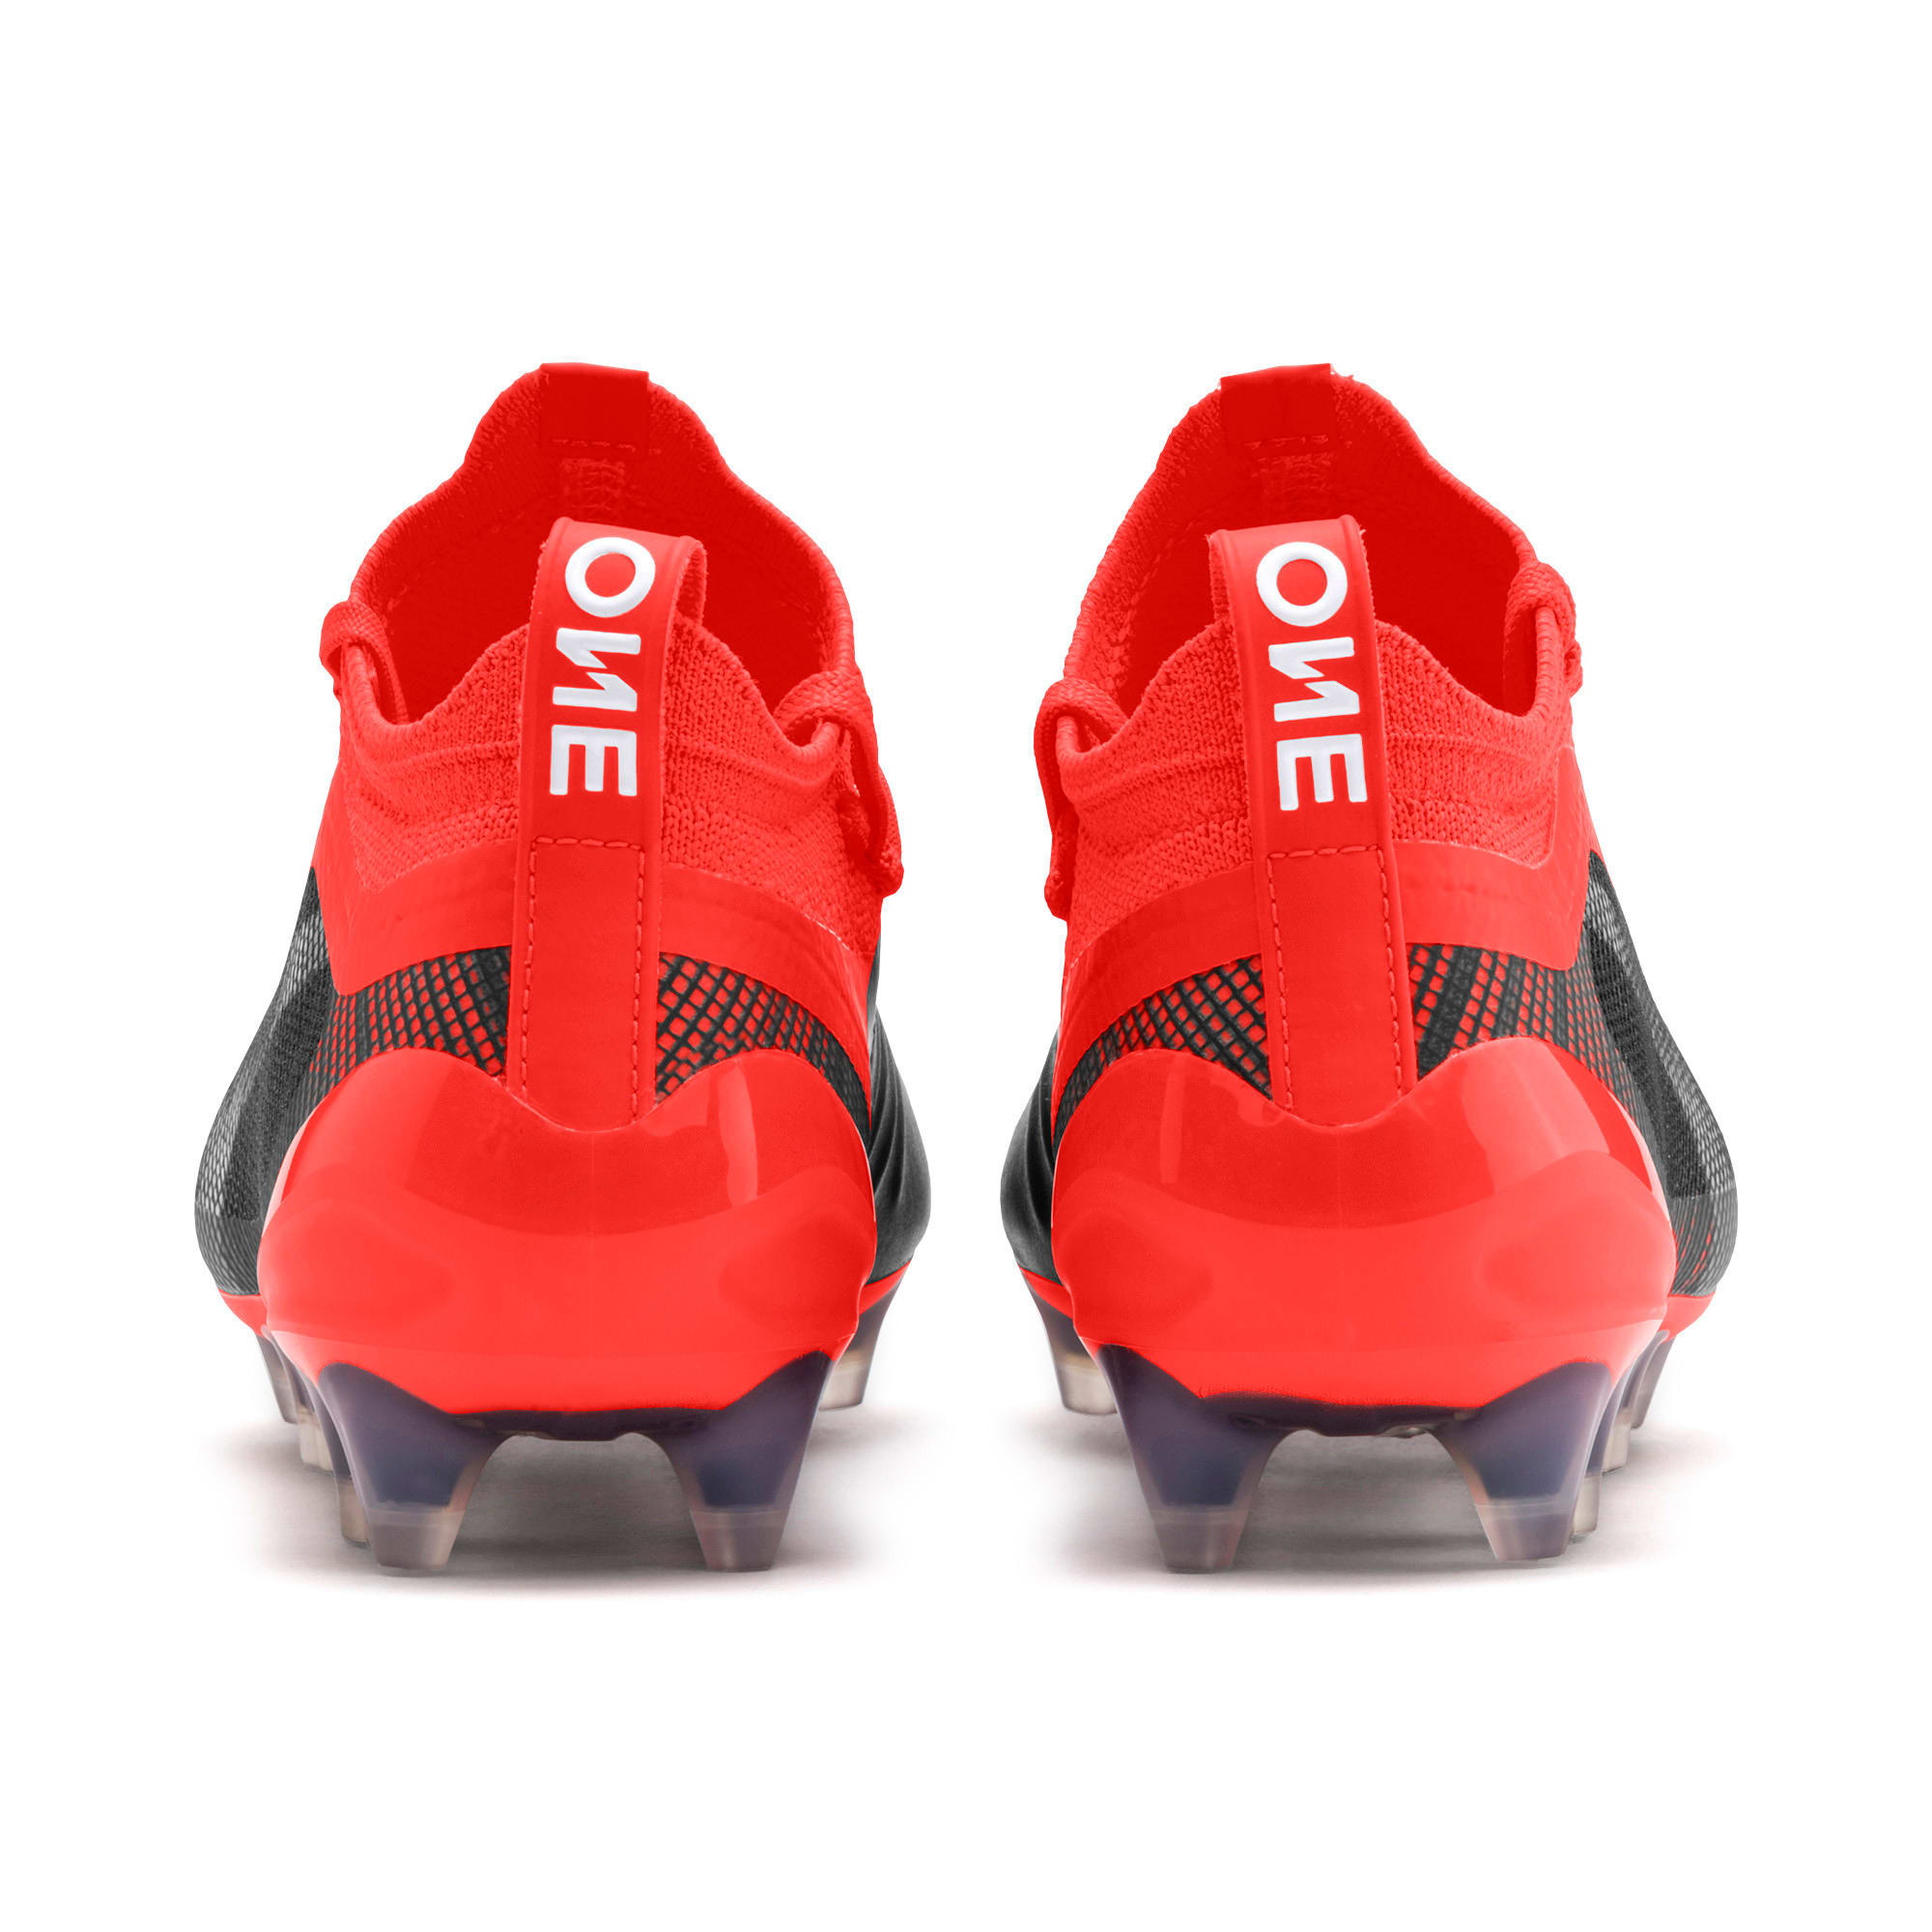 Thumbnail 3 of PUMA ONE 5.1 FG/AG Soccer Cleats JR, Black-Nrgy Red-Aged Silver, medium